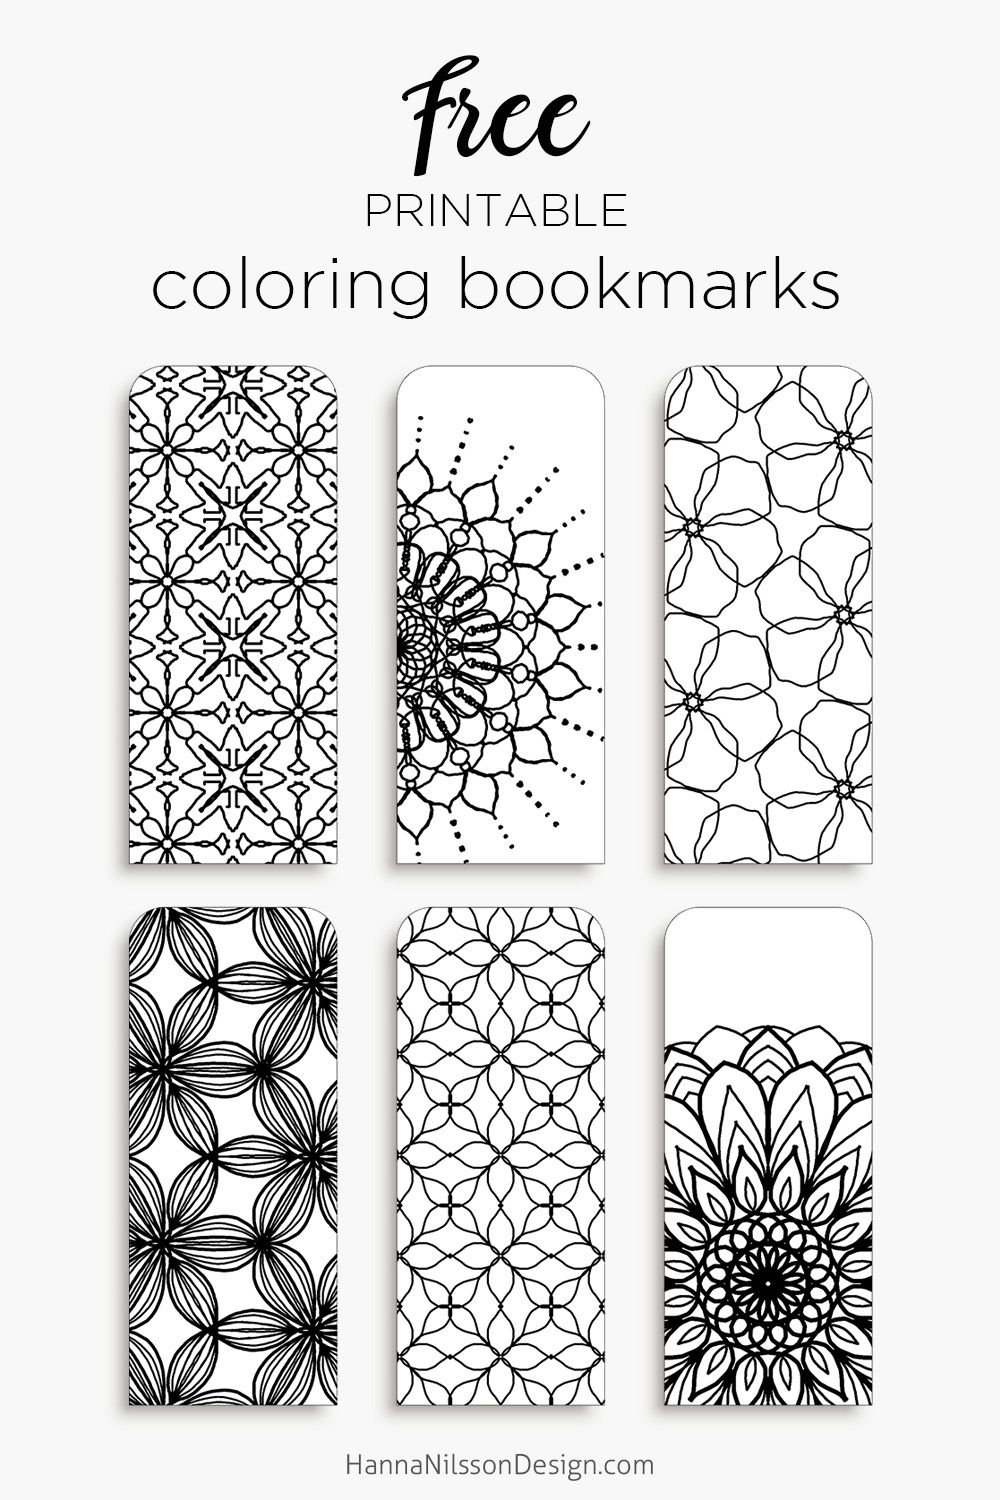 bookmark coloring pages Color your own bookmarks   FREE printable bookmarks for coloring  bookmark coloring pages